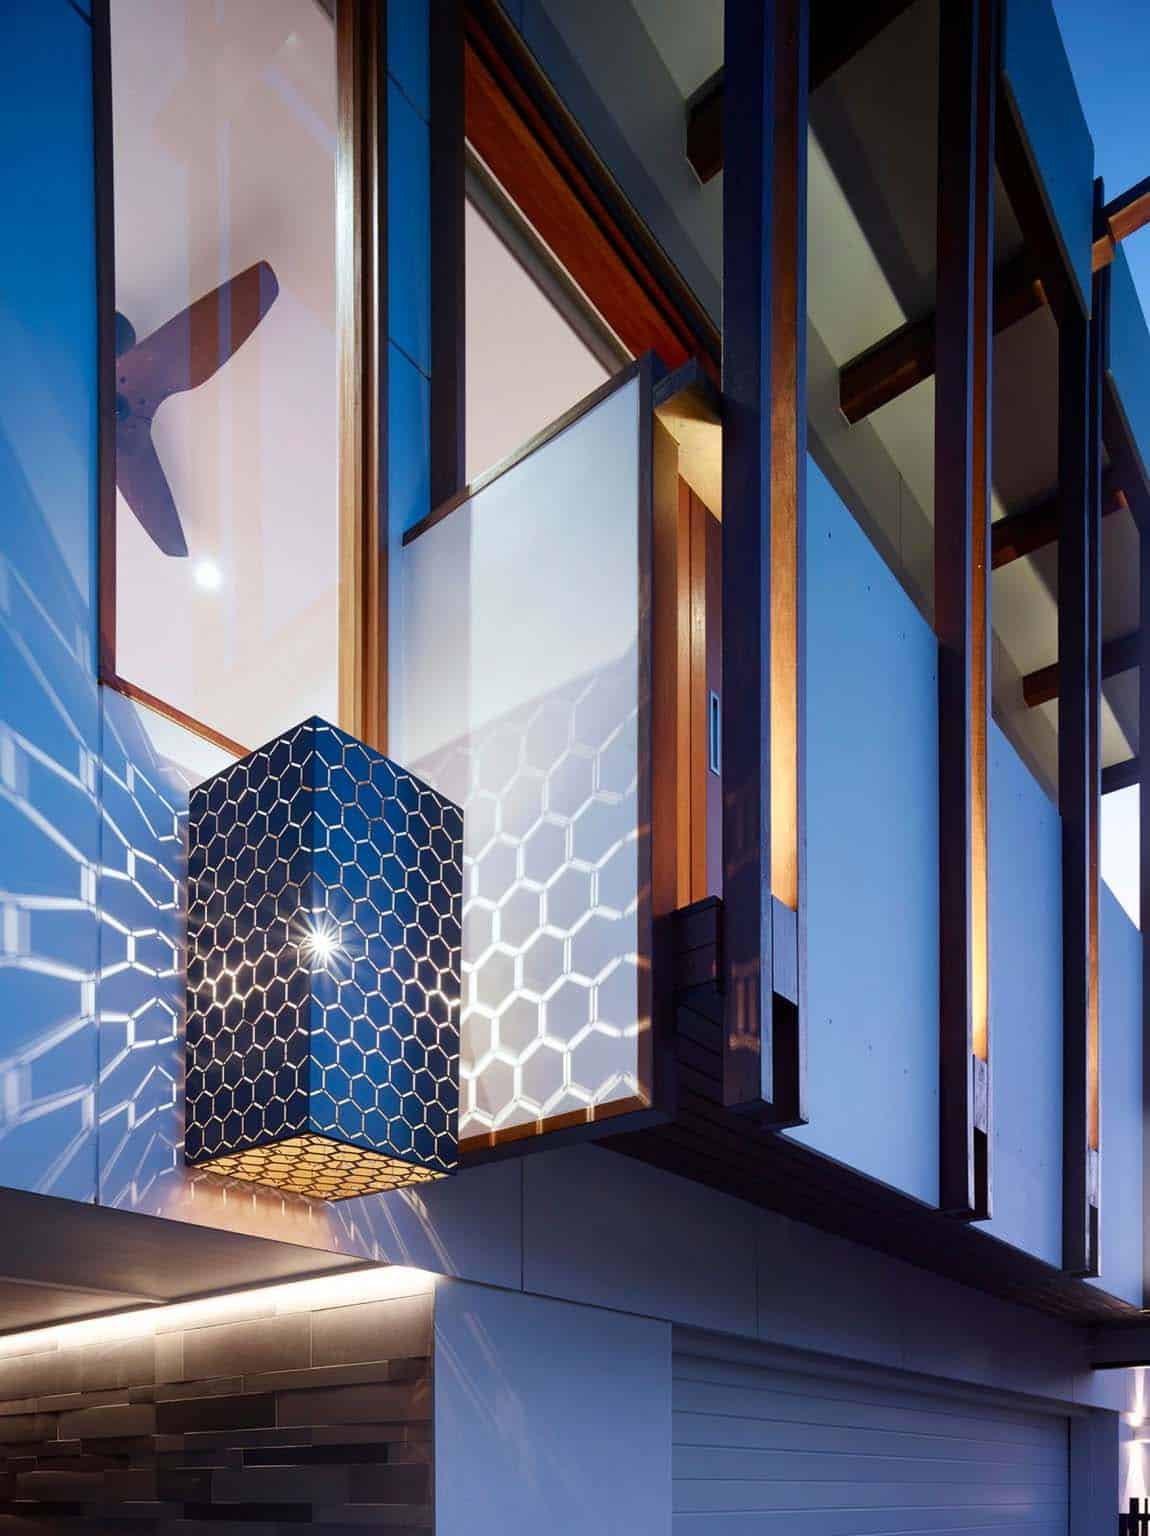 Architecture-Contemporary-Home-ONeill Architecture-14-1 Kindesign